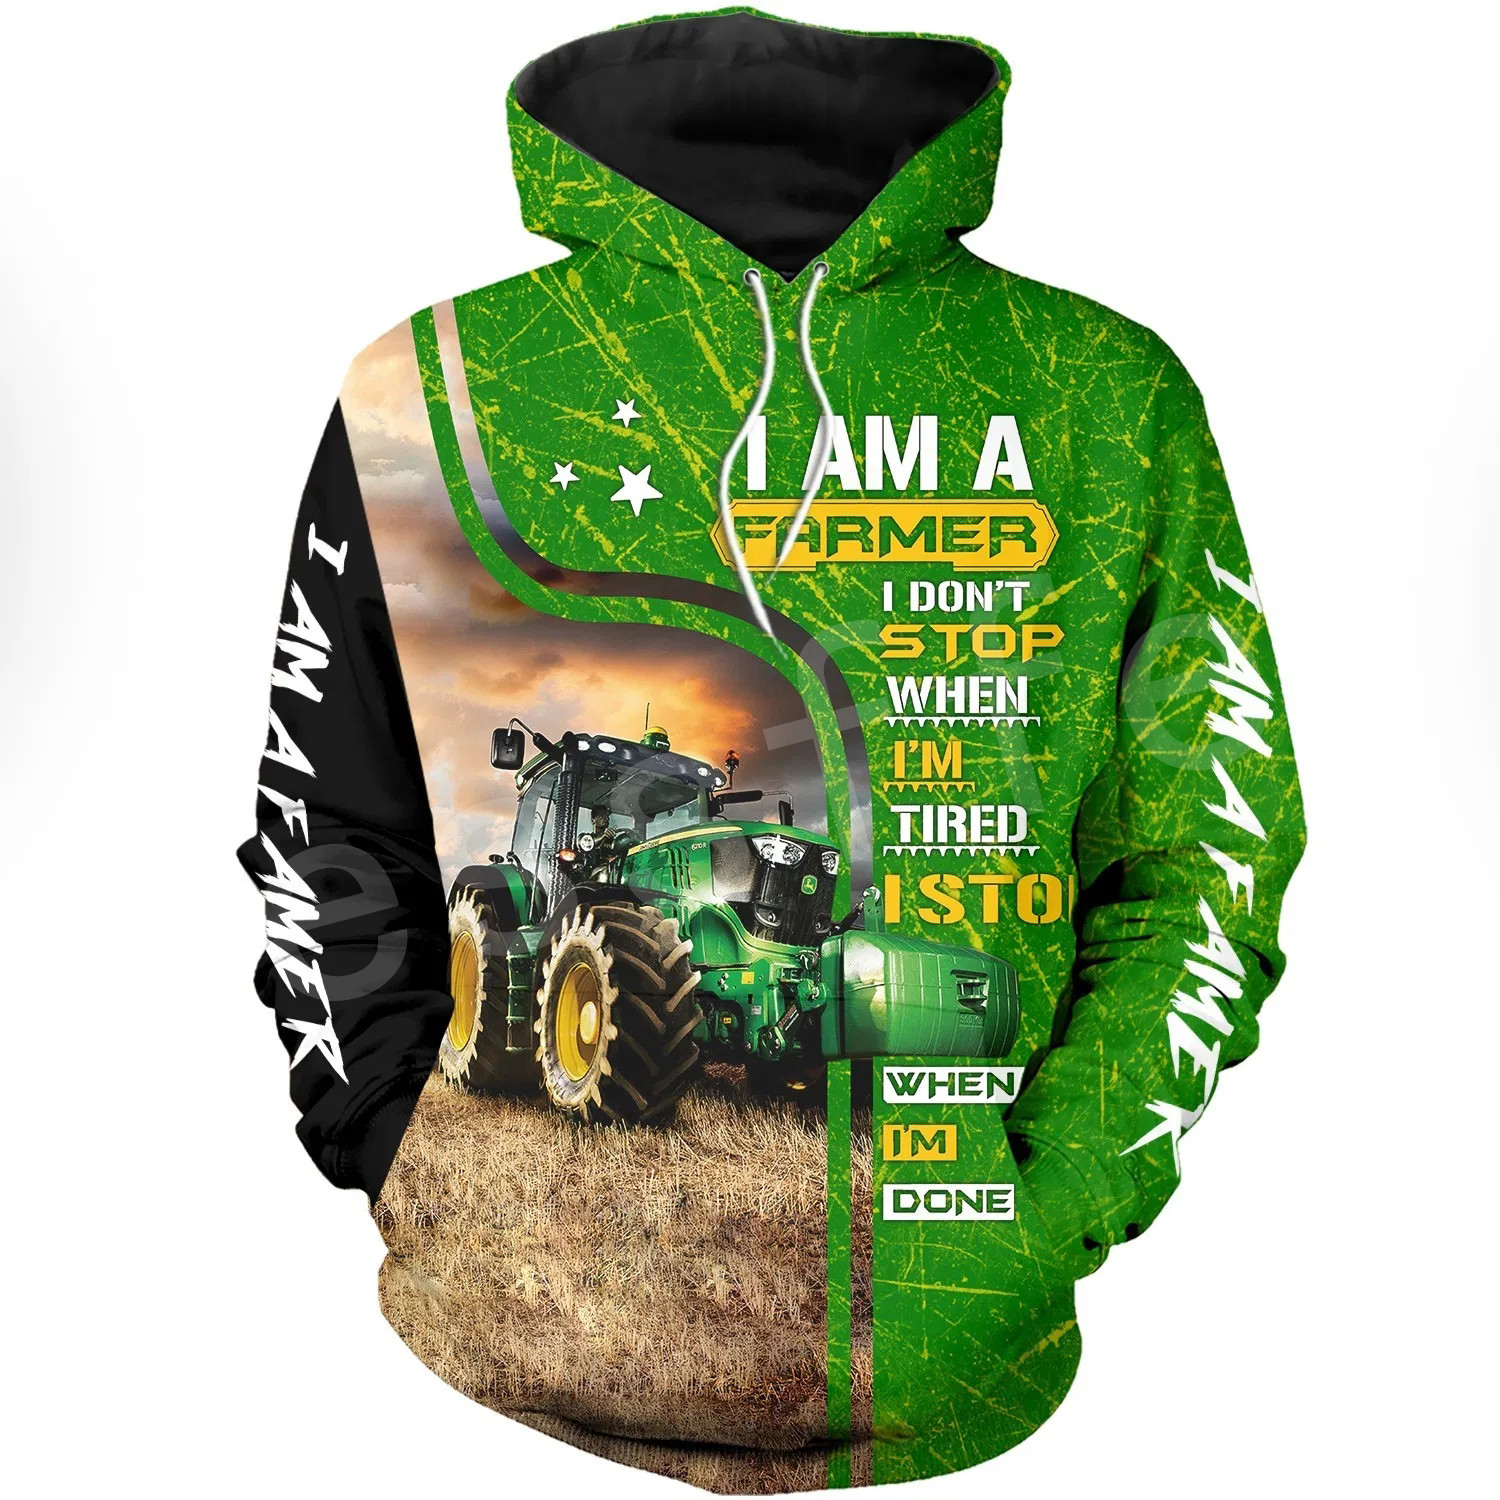 Tessffel Worker Farmer Tractor Instrument Funny NewFashion Long Sleeves 3DPrint Zipper/Hoodies/Sweatshirts/Jacket/Men/women A-18